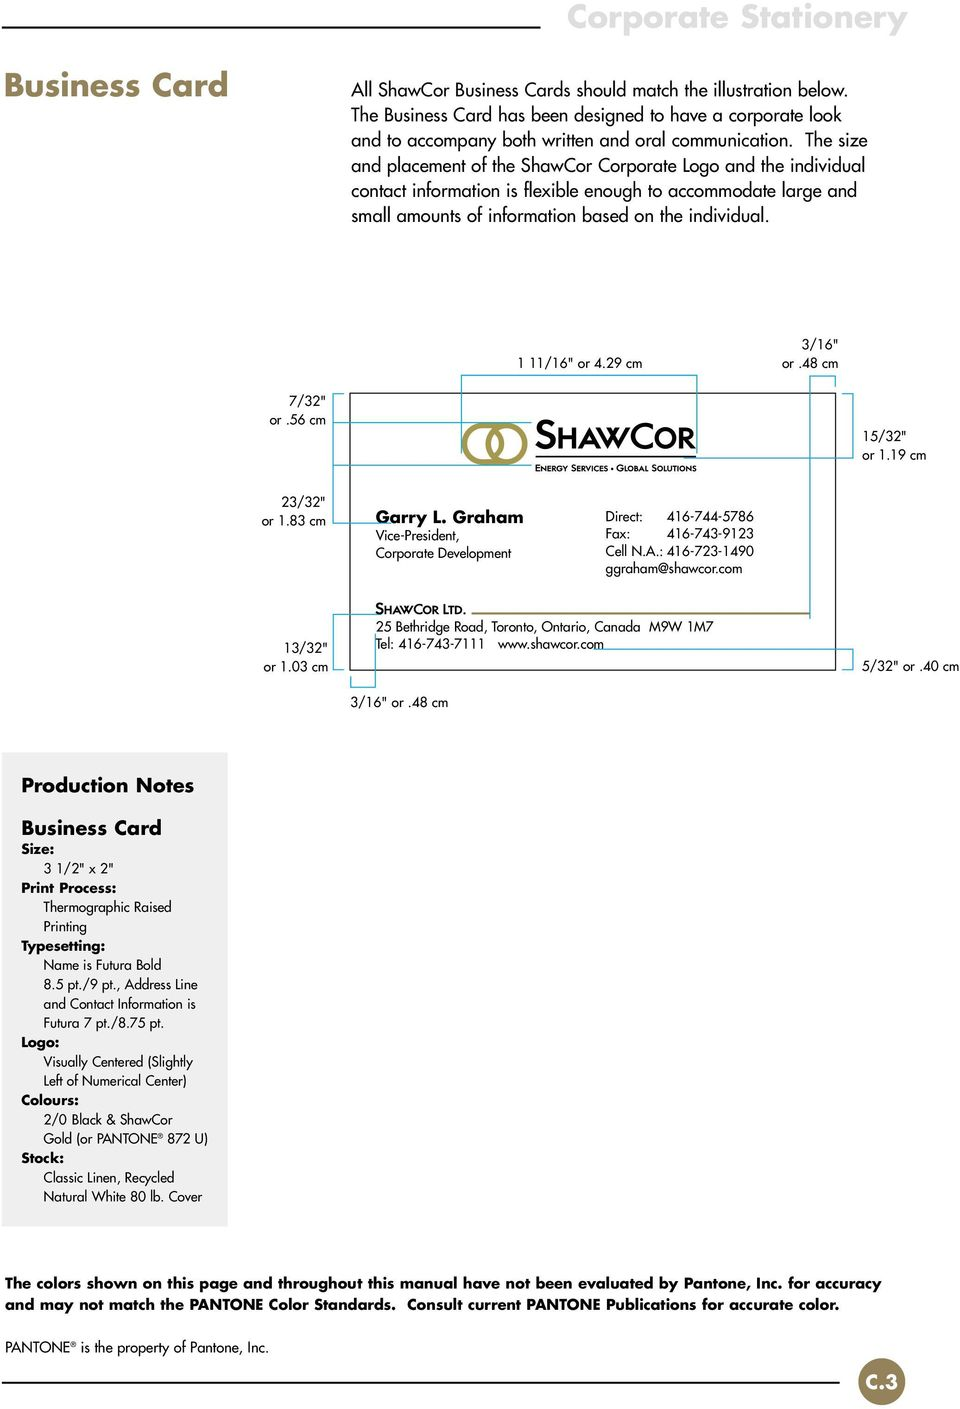 The size and placement of the ShawCor Corporate Logo and the individual contact information is flexible enough to accommodate large and small amounts of information based on the individual.